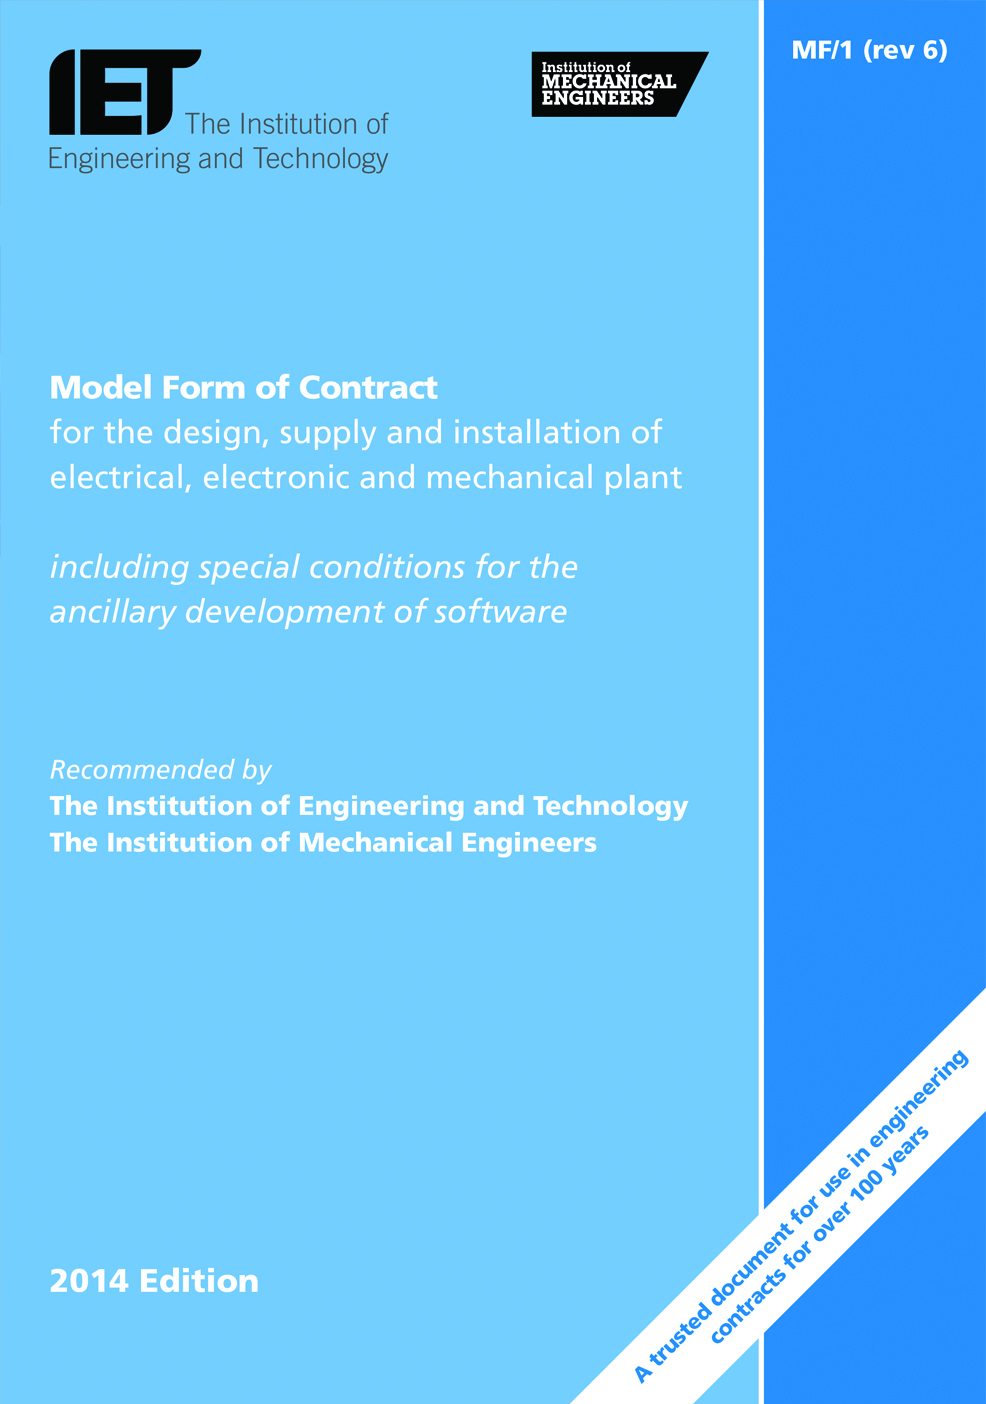 The Iet Shop Model Form Of Contract Mf 1 Revision 6